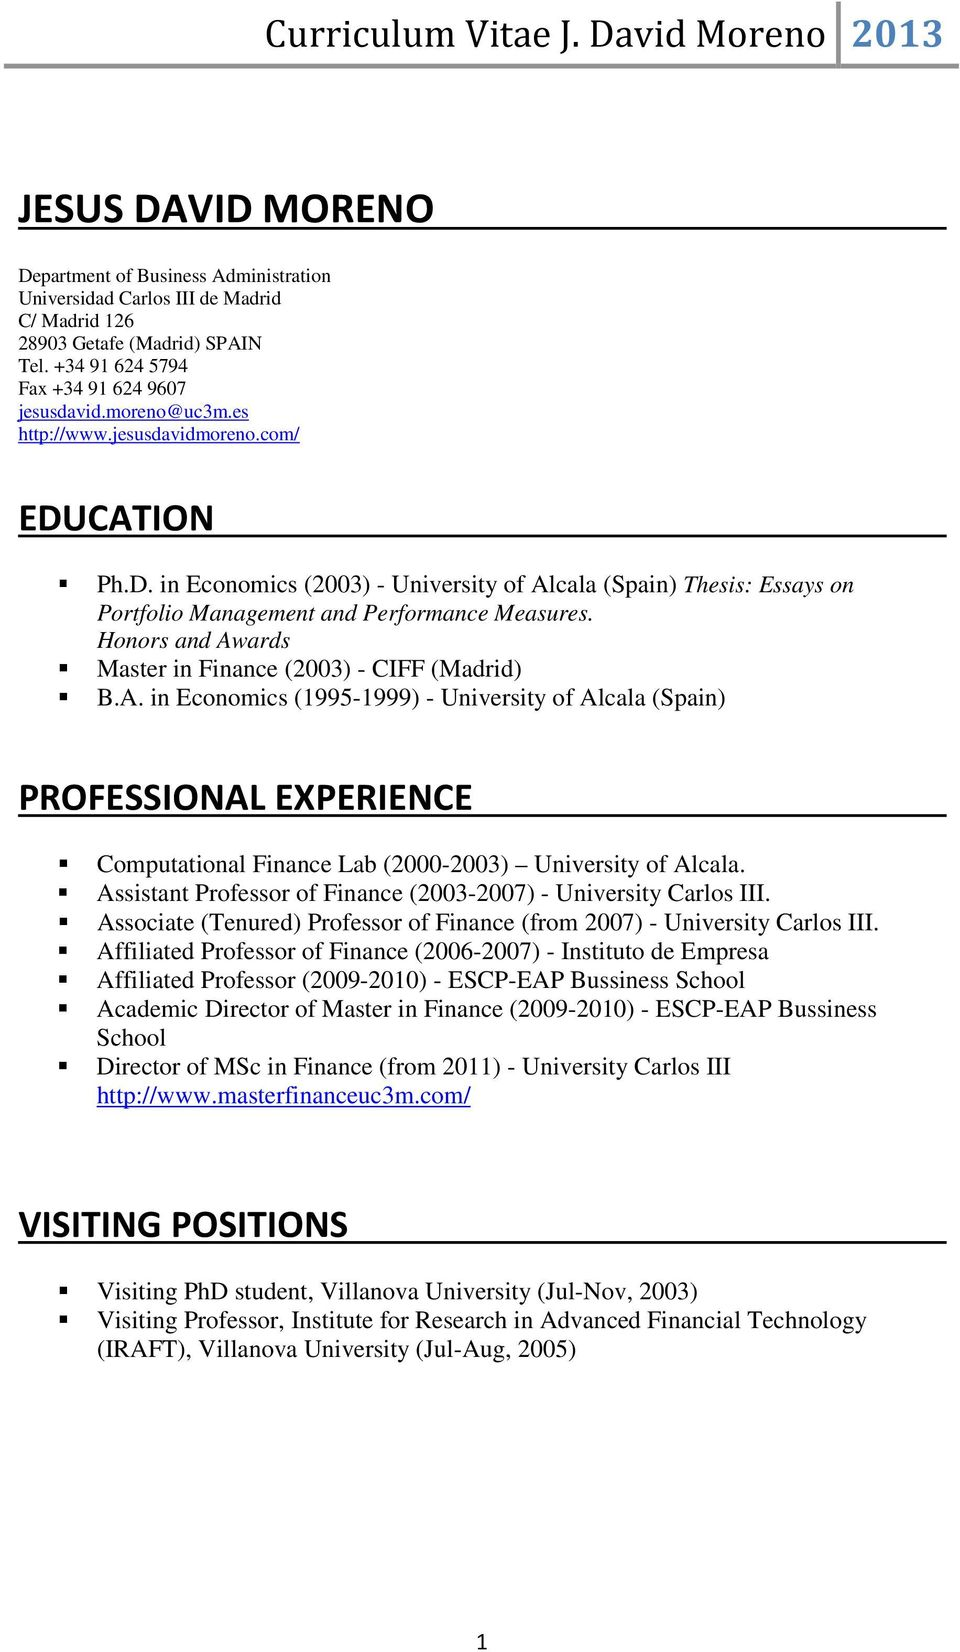 Honors and Awards Master in Finance (2003) - CIFF (Madrid) B.A. in Economics (1995-1999) - University of Alcala (Spain) PROFESSIONAL EXPERIENCE Computational Finance Lab (2000-2003) University of Alcala.